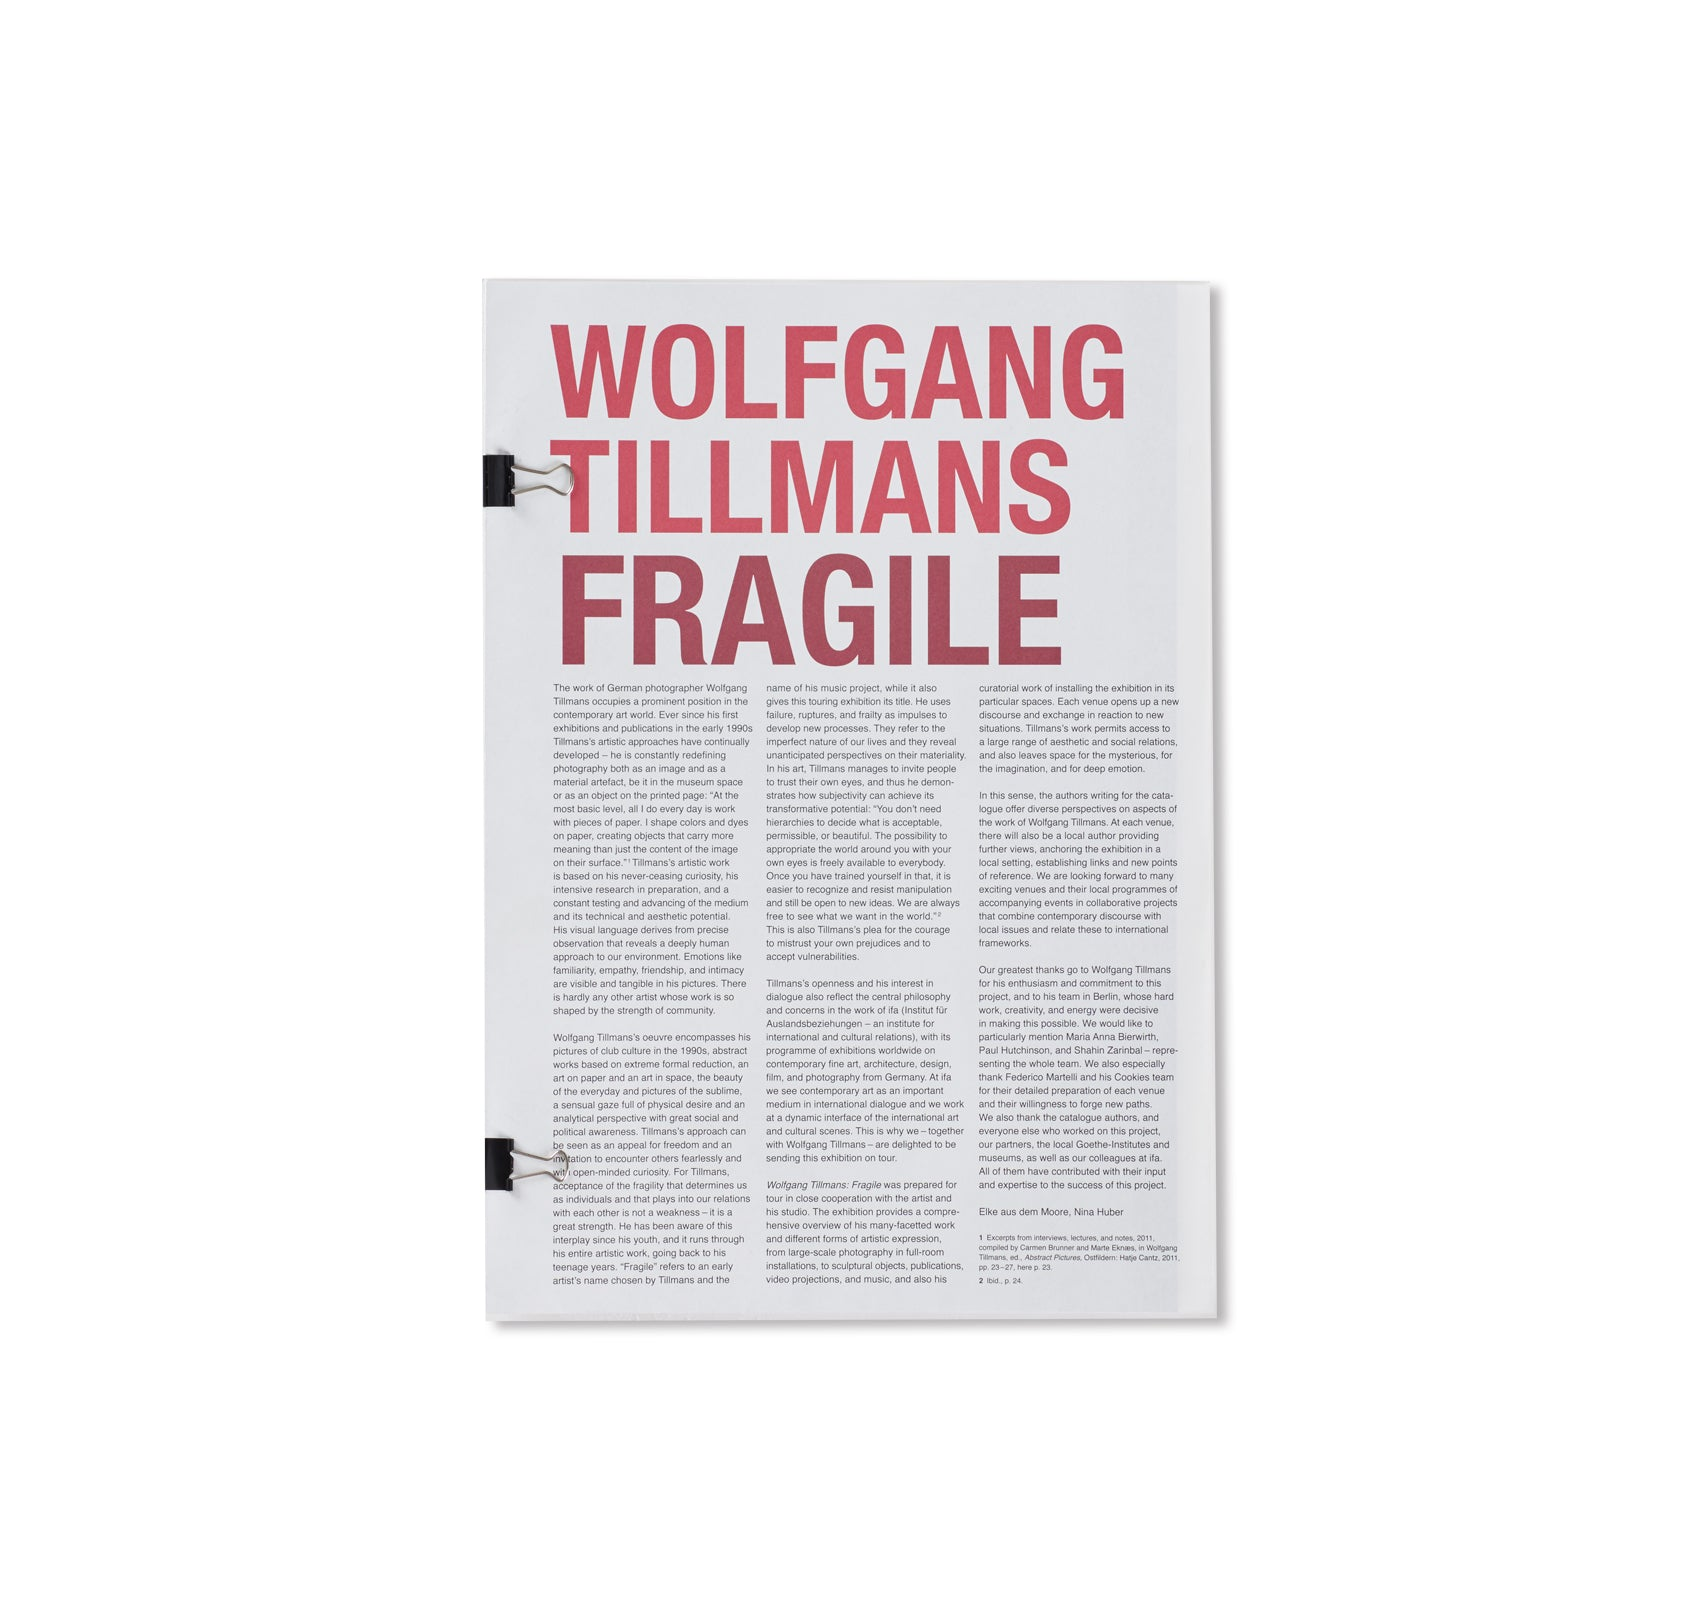 FRAGILE by Wolfgang Tillmans